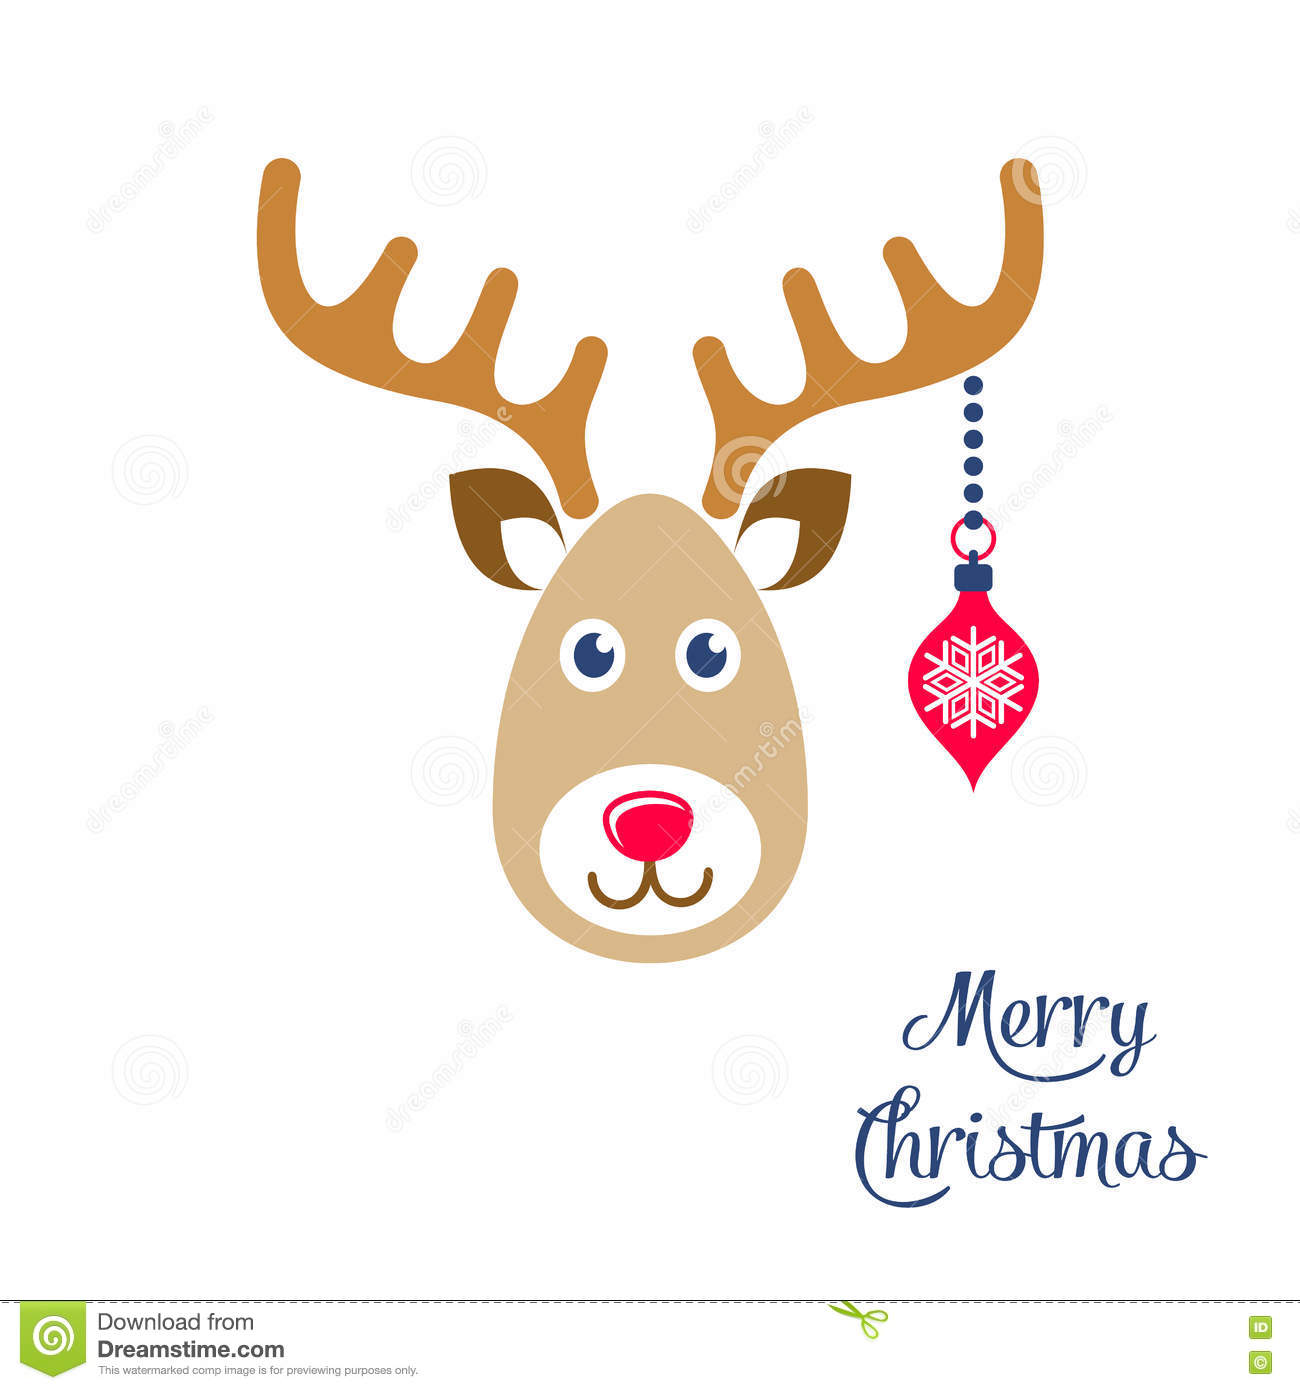 Download Cartoon Reindeer Face Christmas Icon Stock Vector